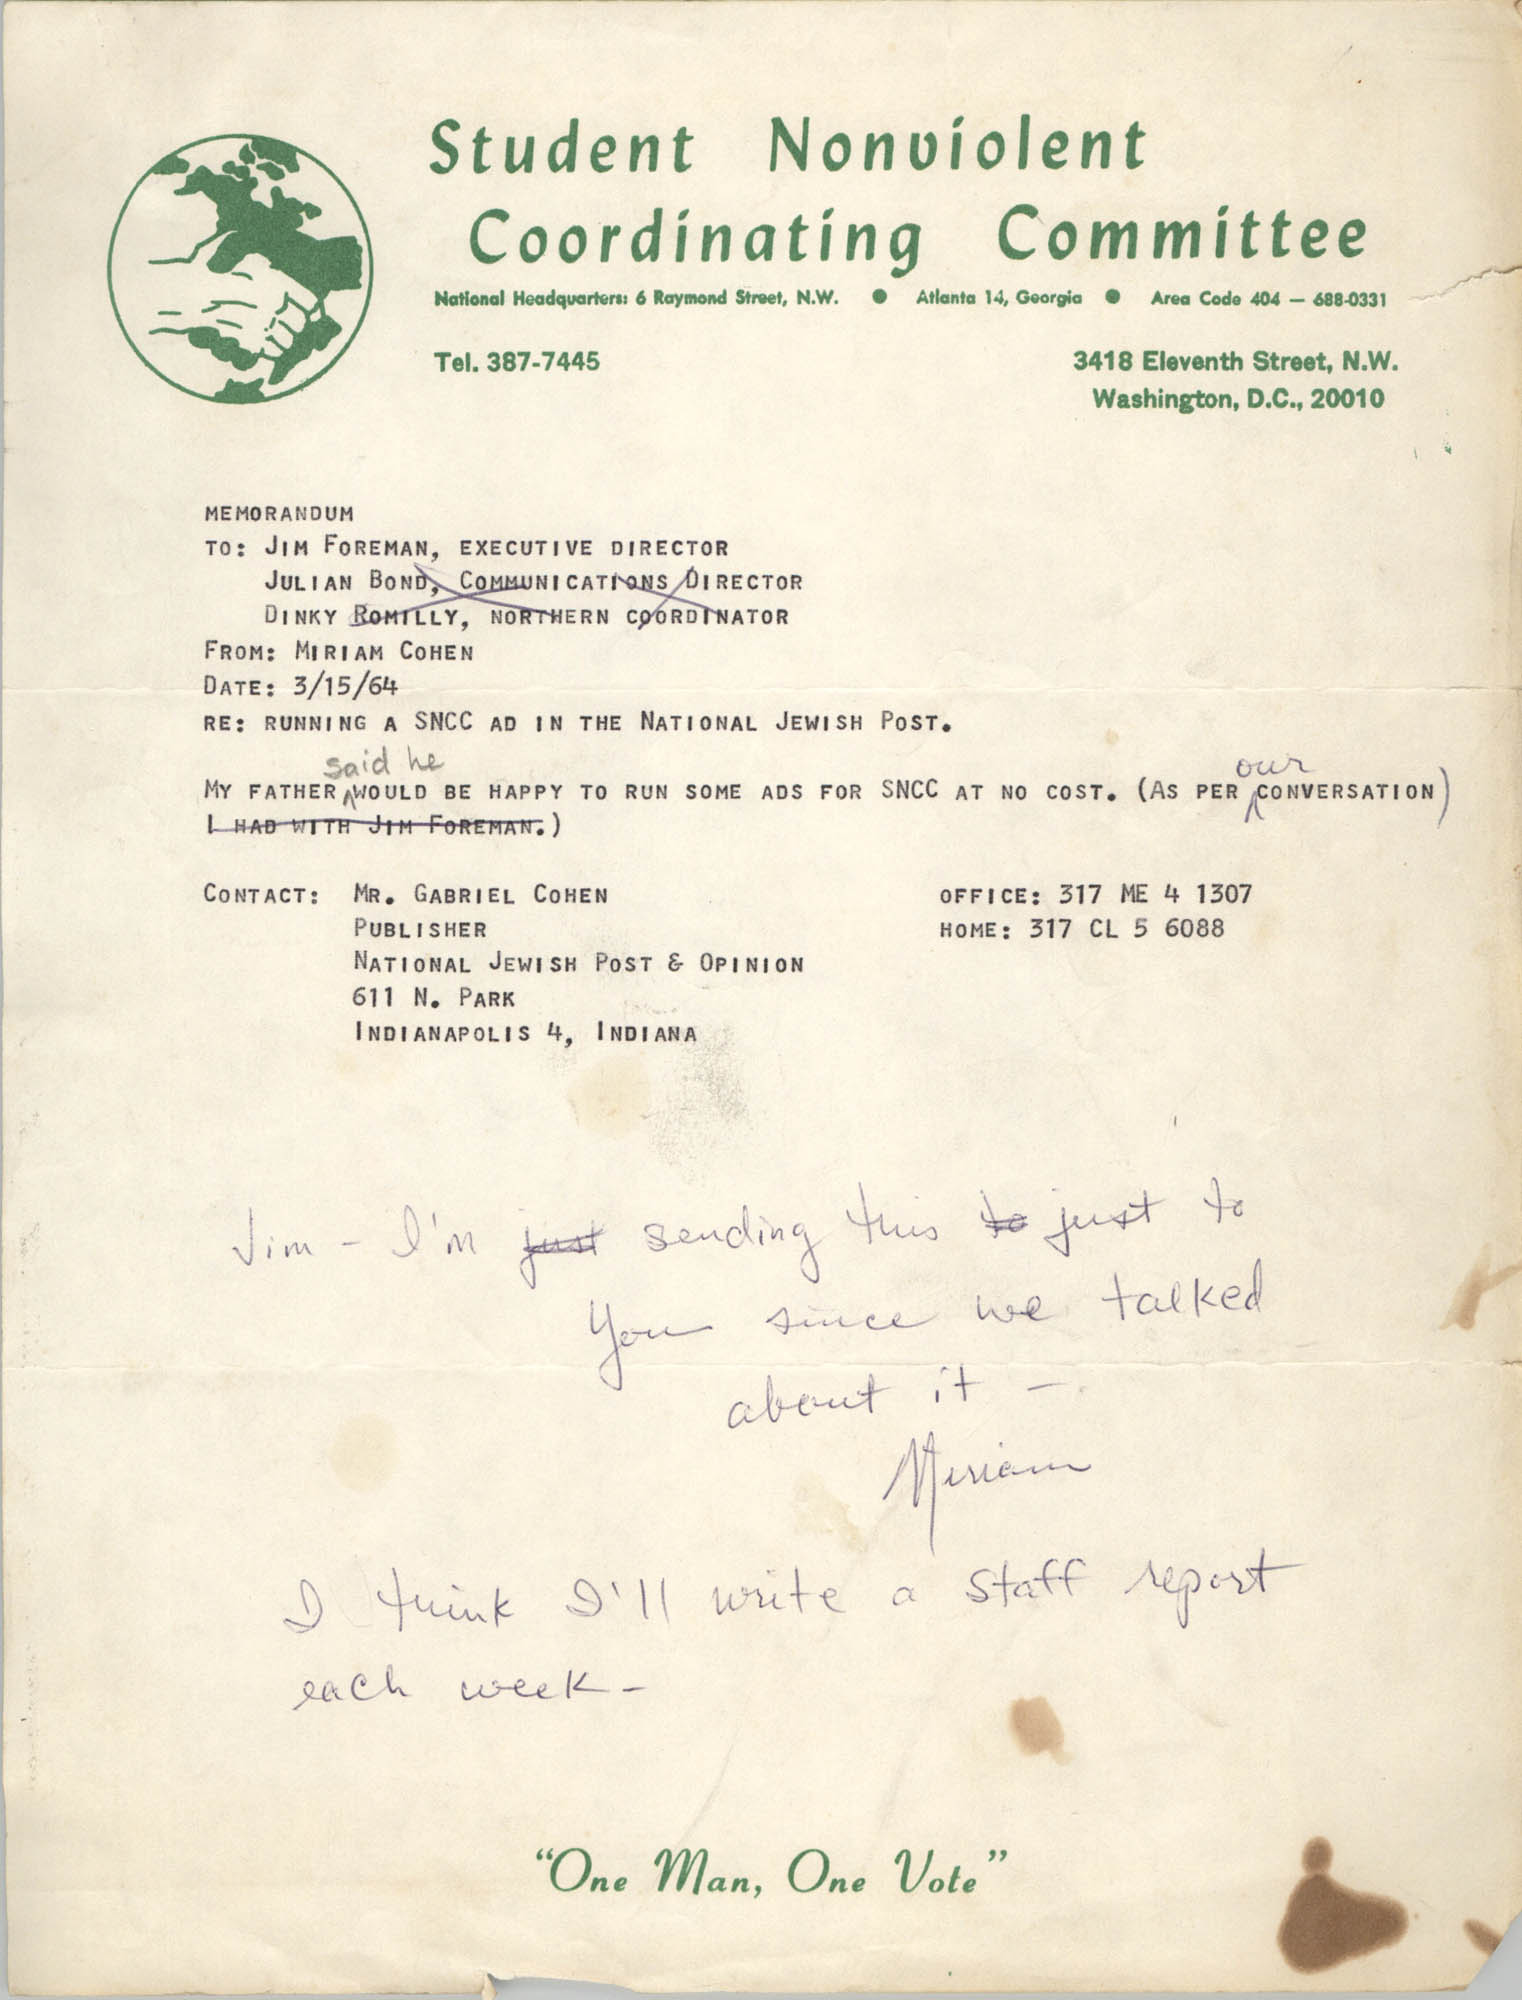 Memorandum from Miriam Cohen to Jim Foreman, March 15, 1964